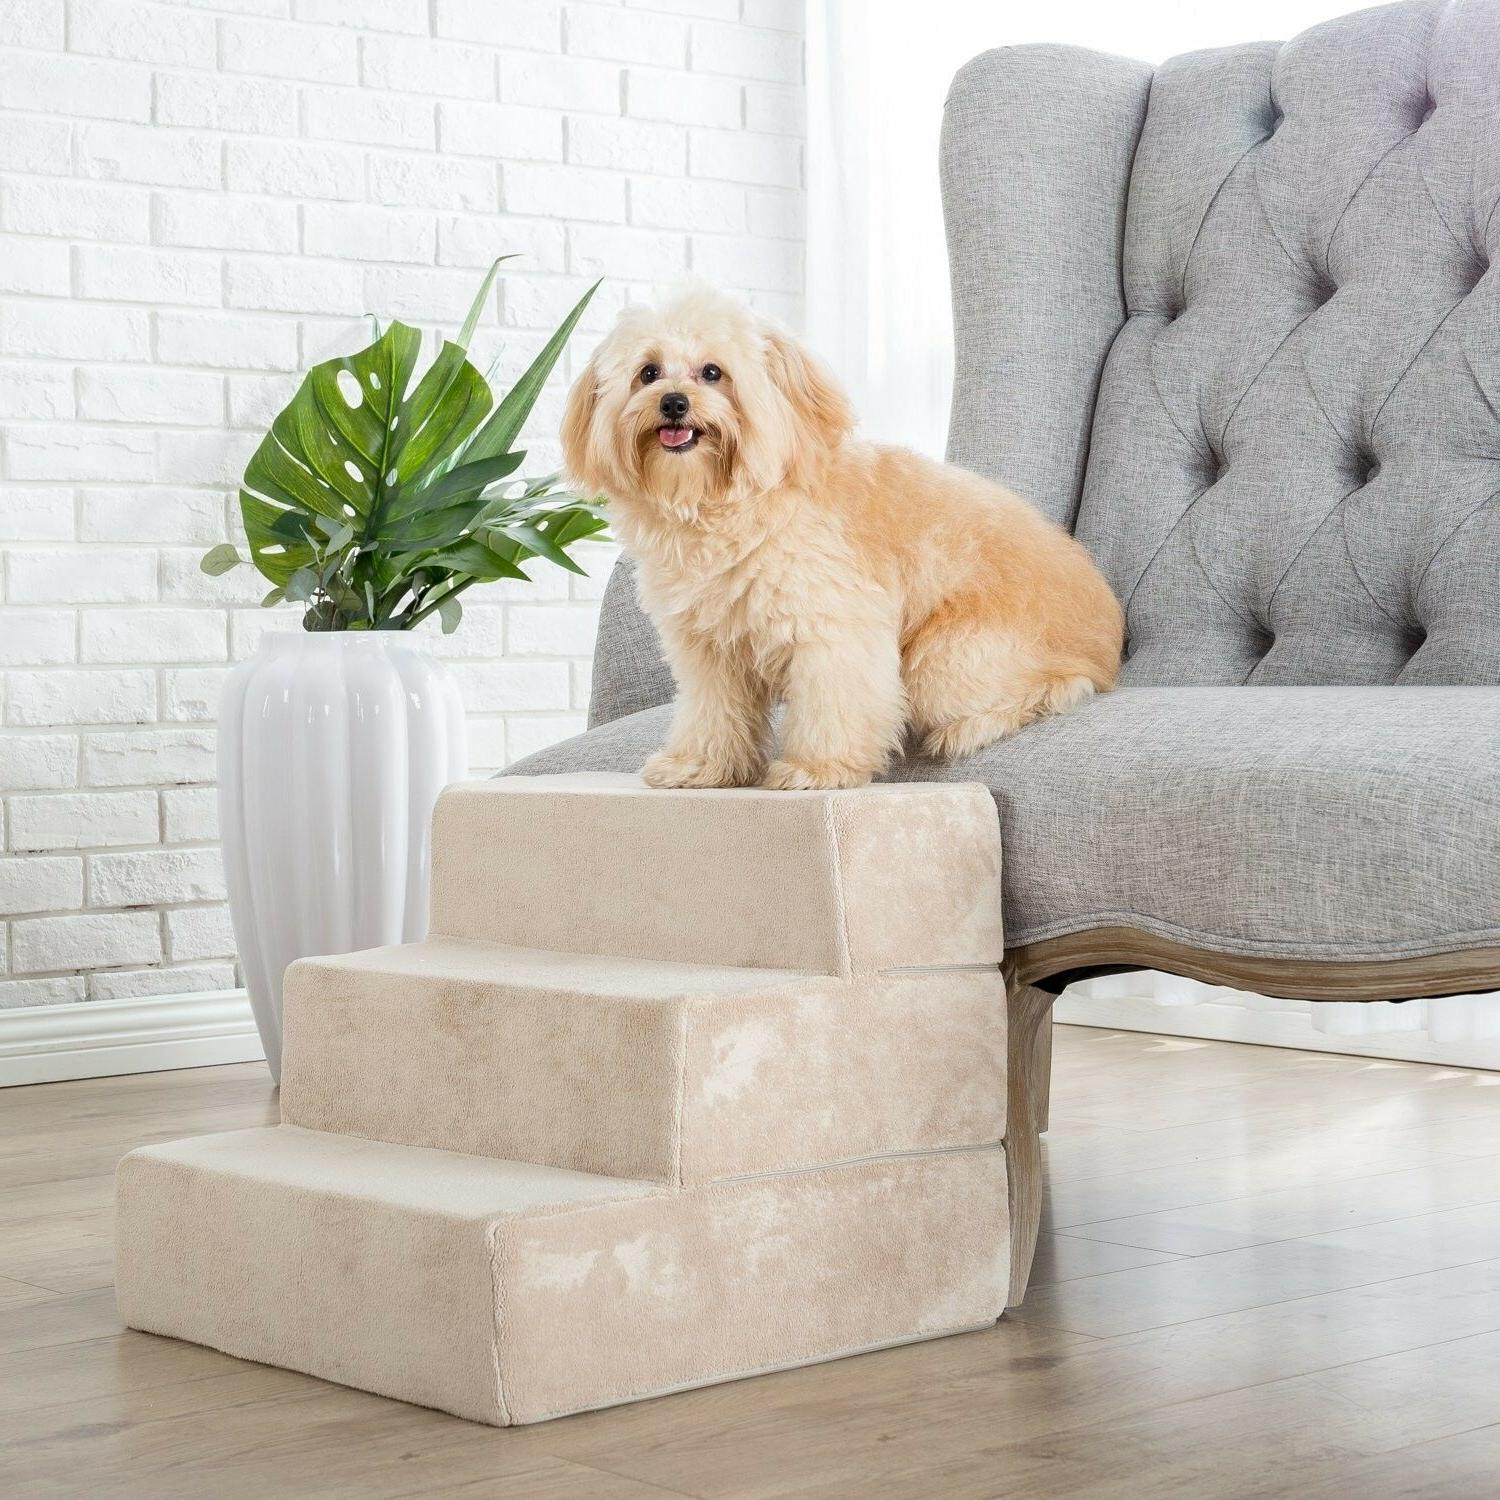 Zinus 3 Step Comfort Foam Pet Stairs for Small Dogs Cats Ram